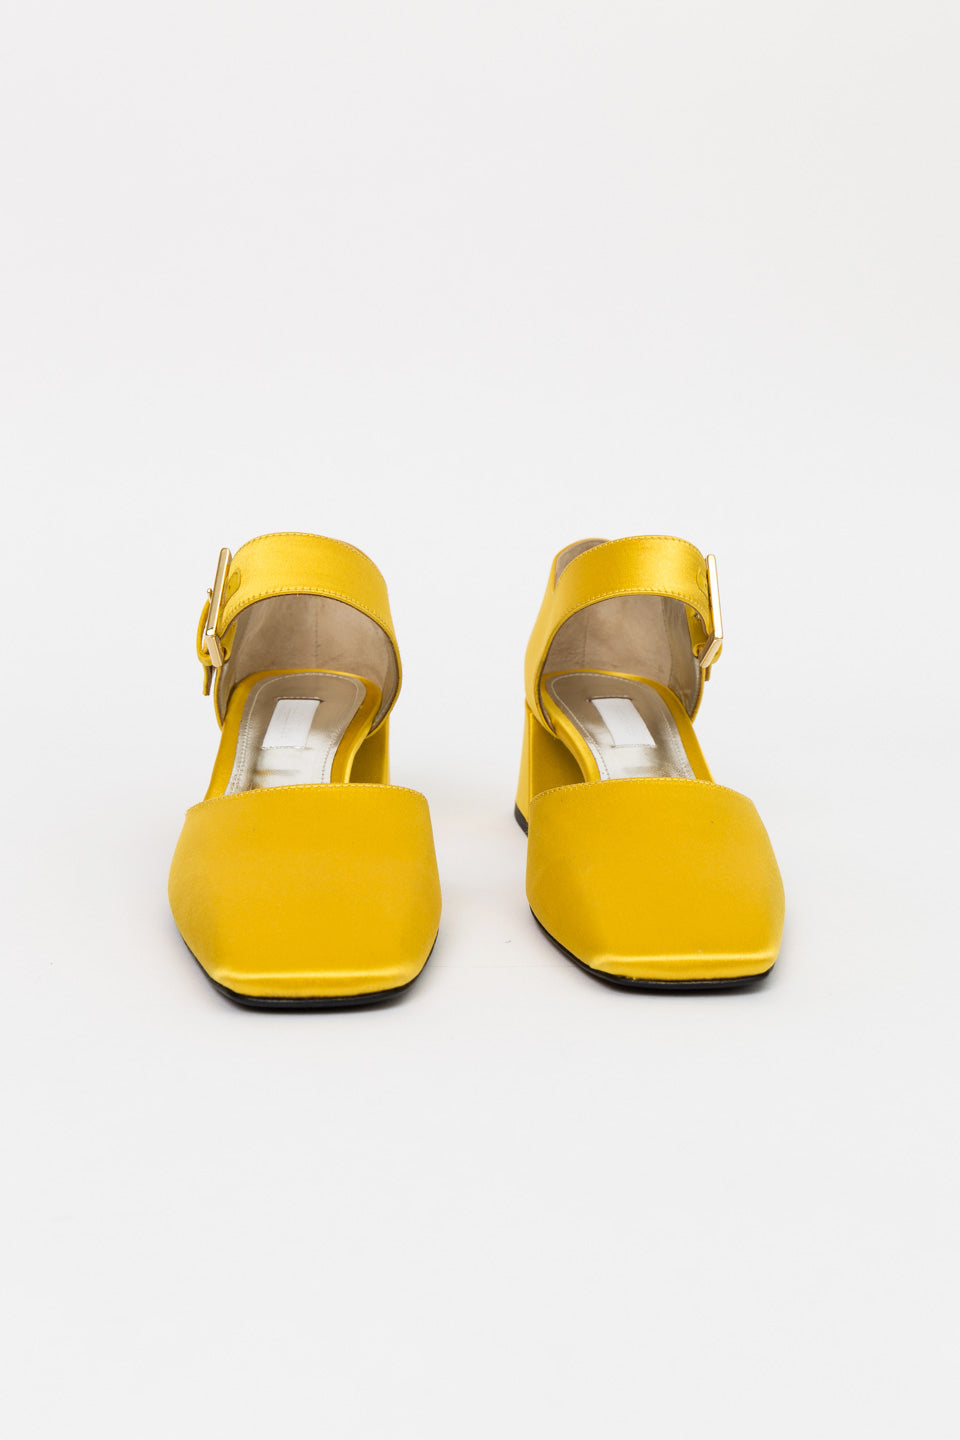 Suzanne Rae Maryjane with Bow Clip-Suzanne Rae Heels-Yellow Heel